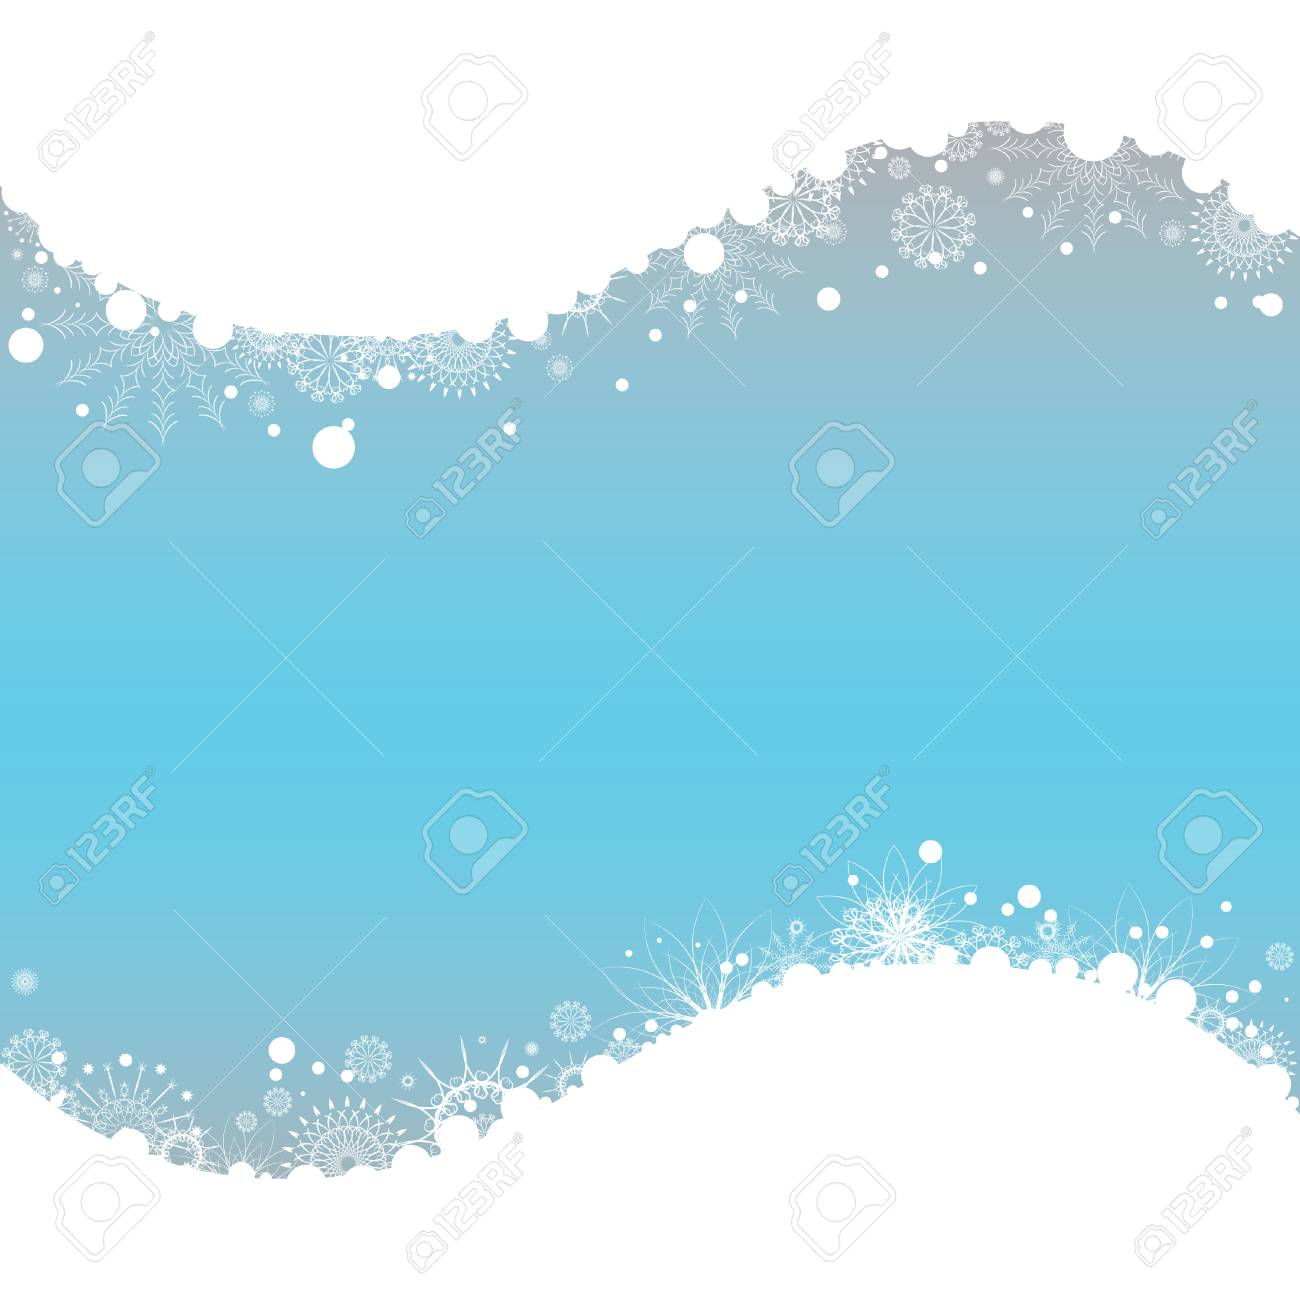 Christmas background with space for text. All elements on separate layers. Vector illustration. Stock Vector - 8219653